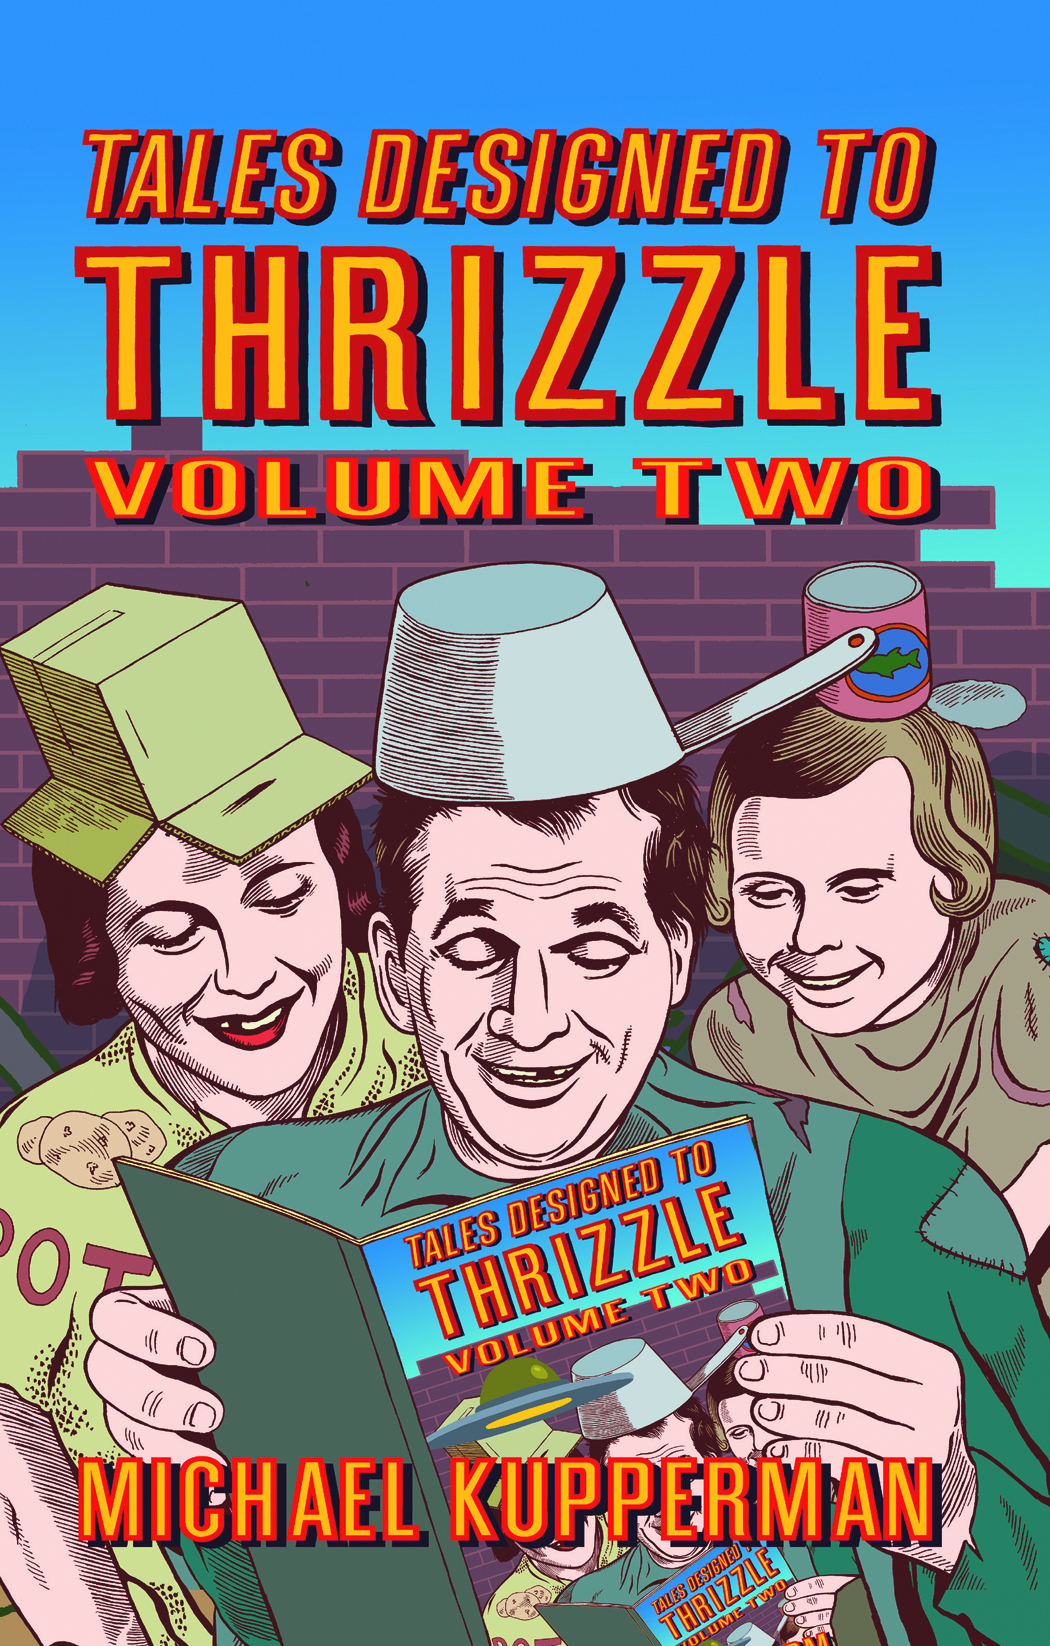 TALES DESIGNED TO THRIZZLE HC VOL 02